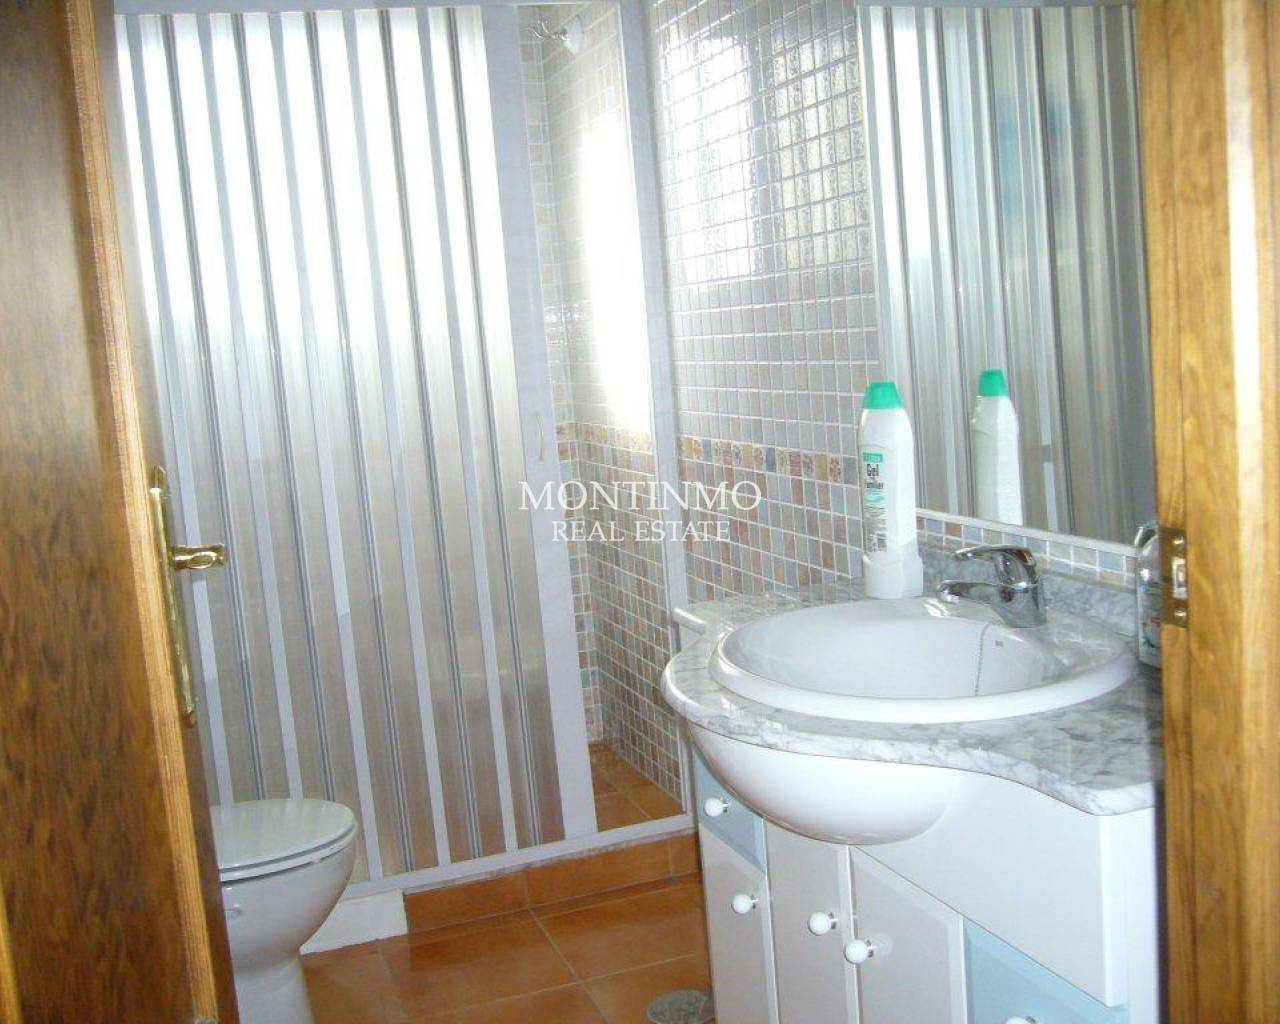 Sale - Cottage - Callosa de Segura